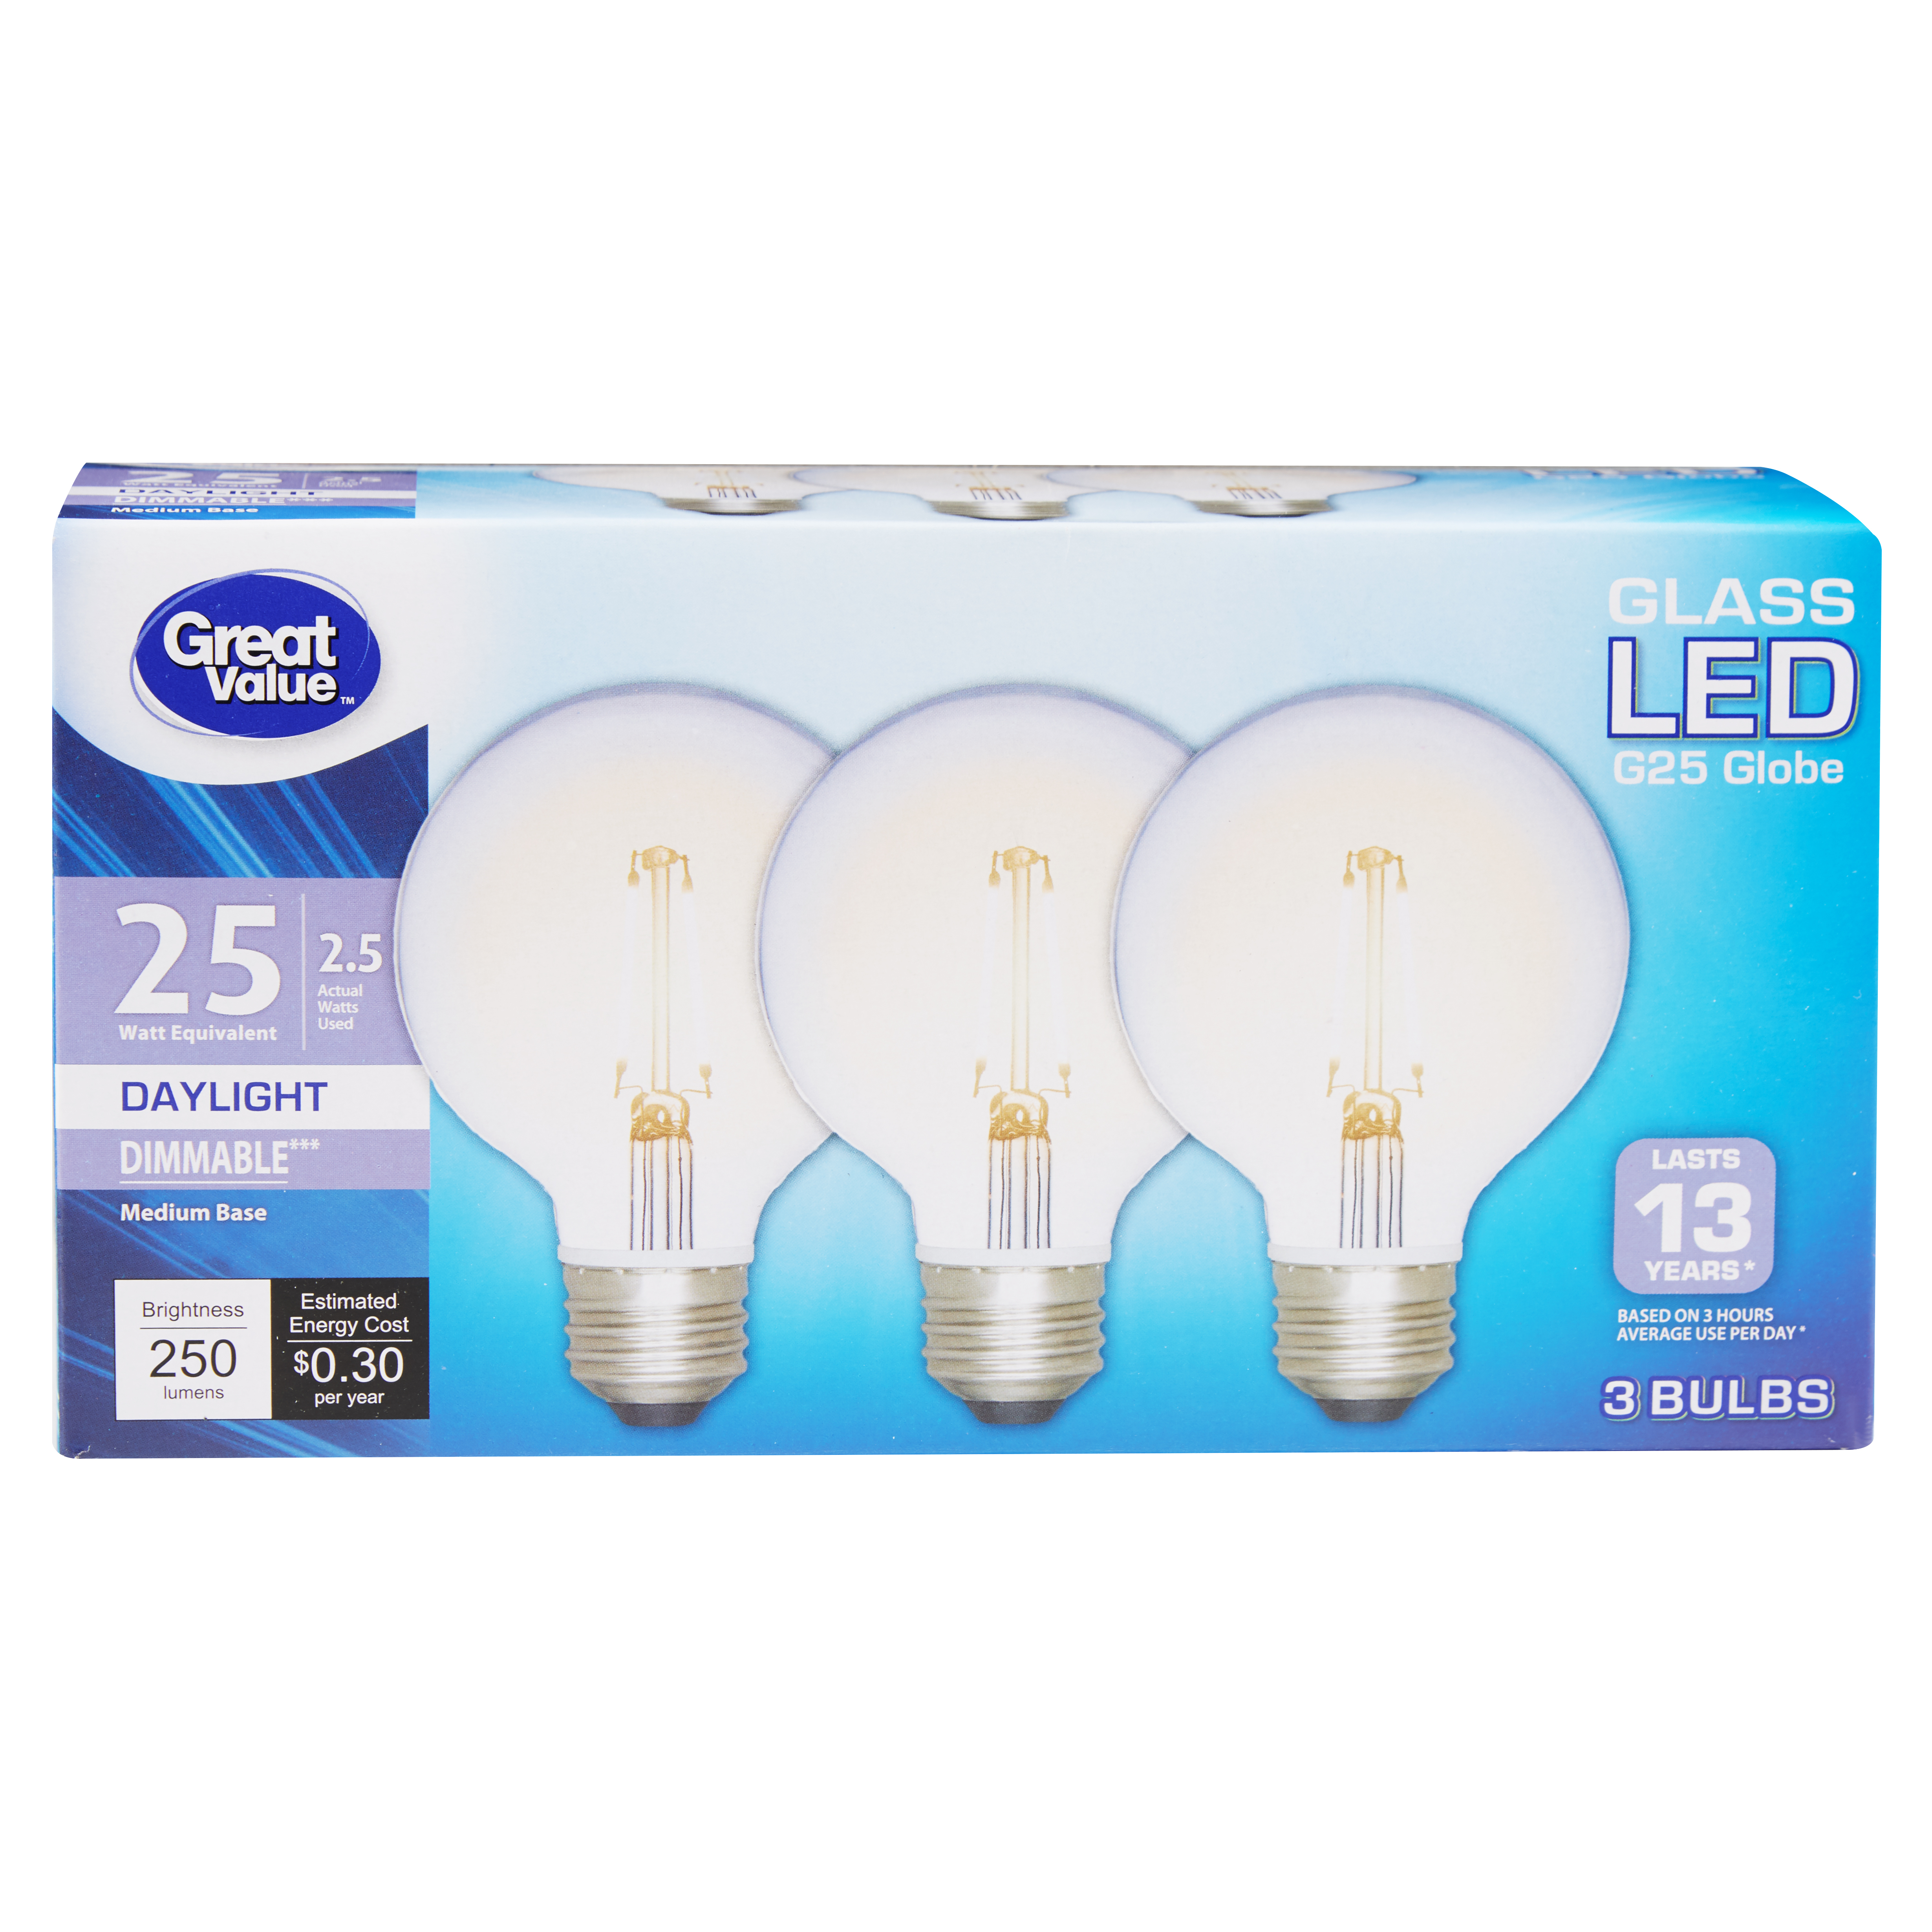 Great Value Glass Globe LED Light Bulb, Daylight, Dimmable, 2.5W (25W Equivalent), 3 Count